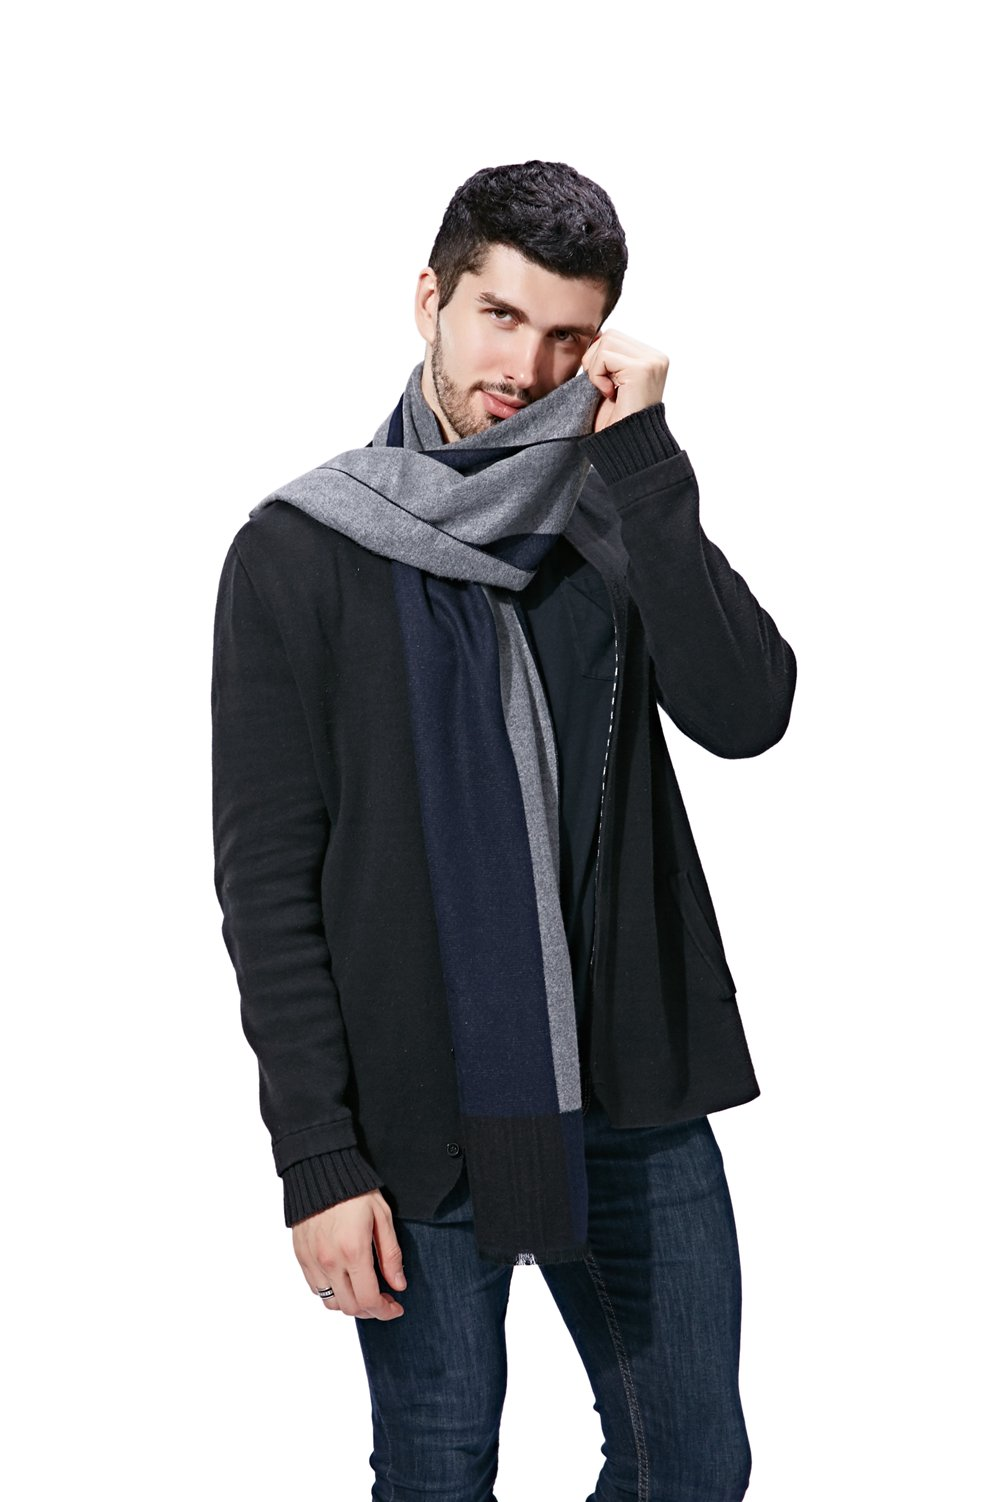 Men Winter Cashmere Scarf by FULLRON - Long Soft & Fashion Cotton Scarves